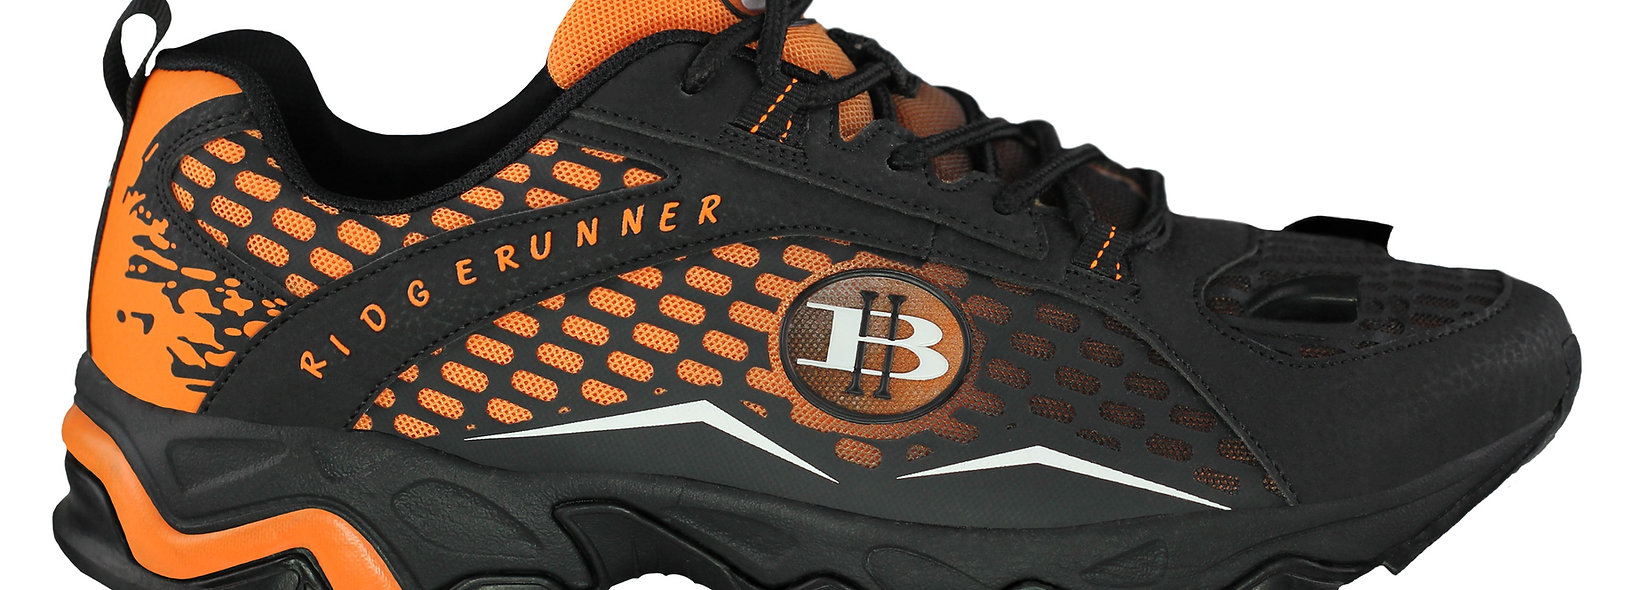 Women's Ridge Runner-LED Hiking Shoes (Orange)